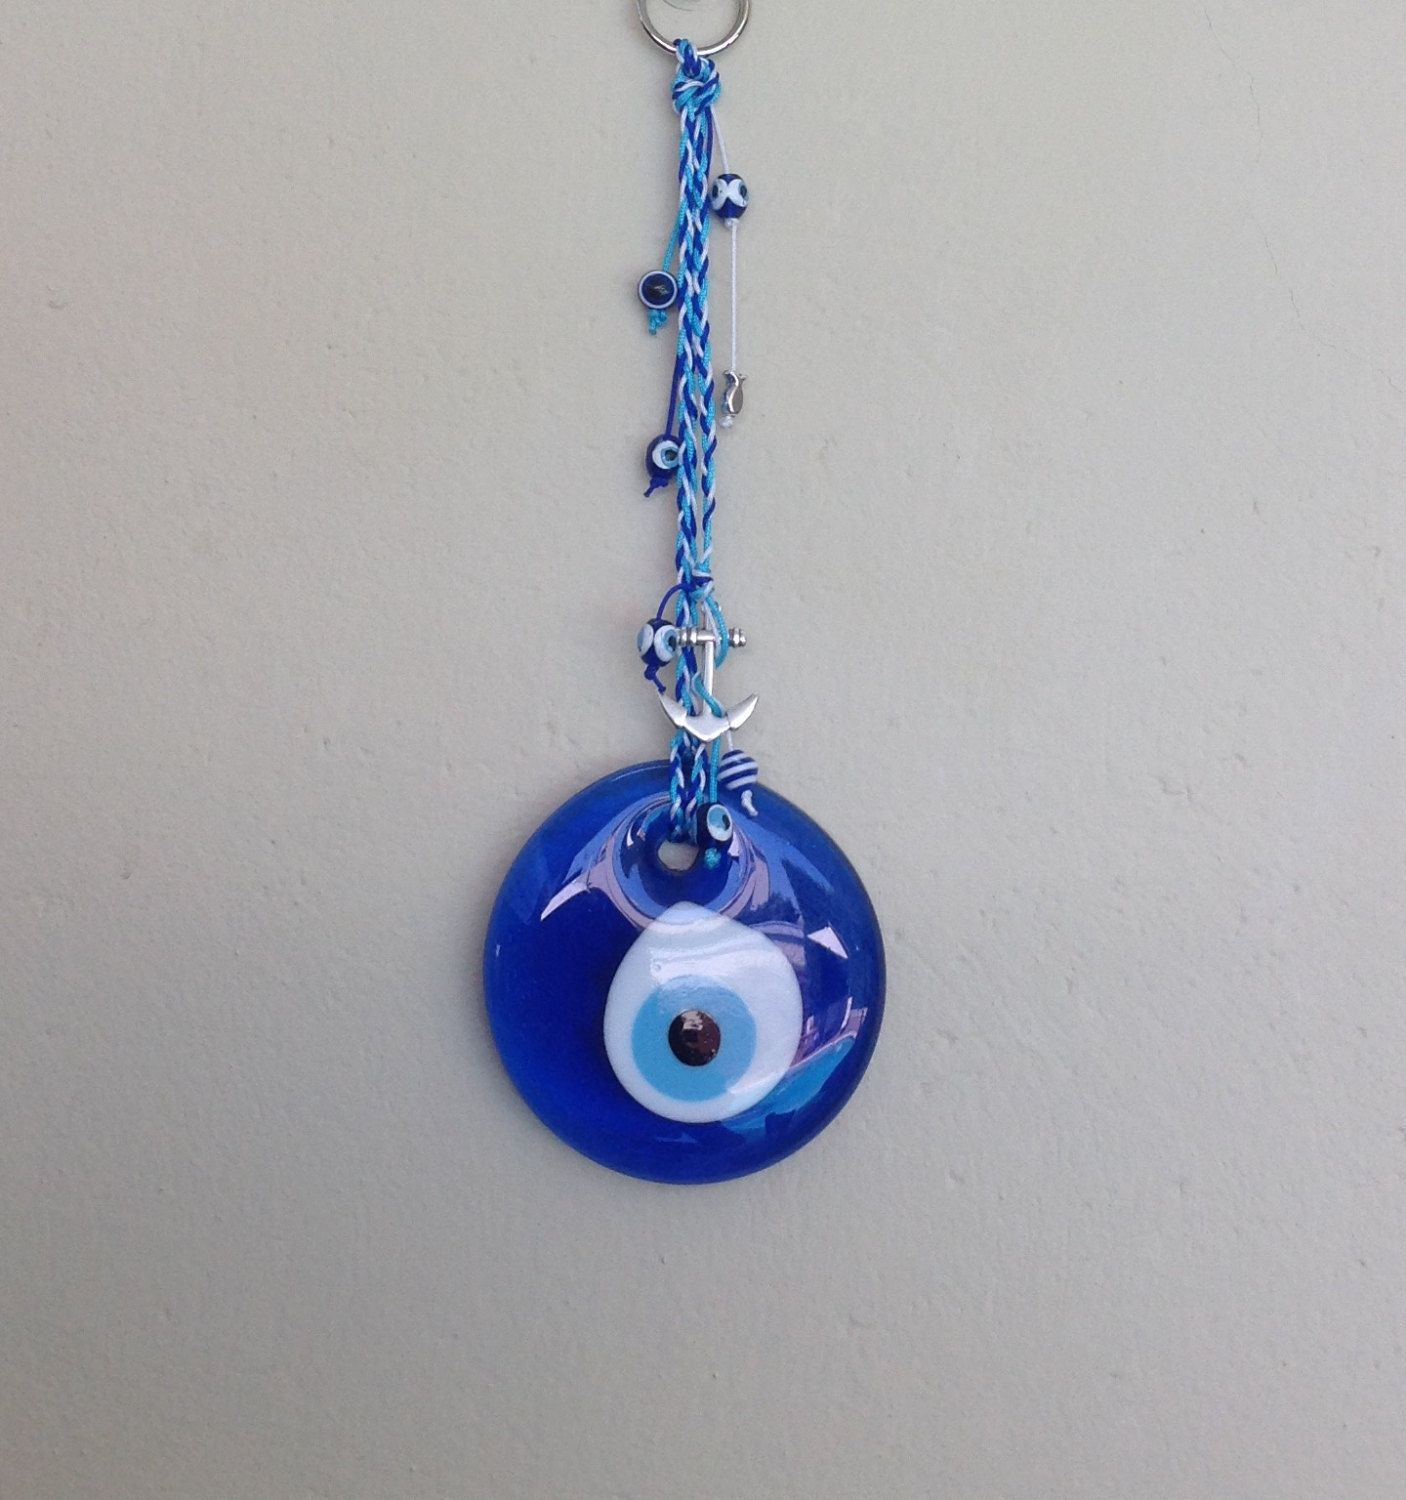 Round evil eye charm good luck charm nazar talisman greek round evil eye charm good luck charm nazar talisman greek mozeypictures Images